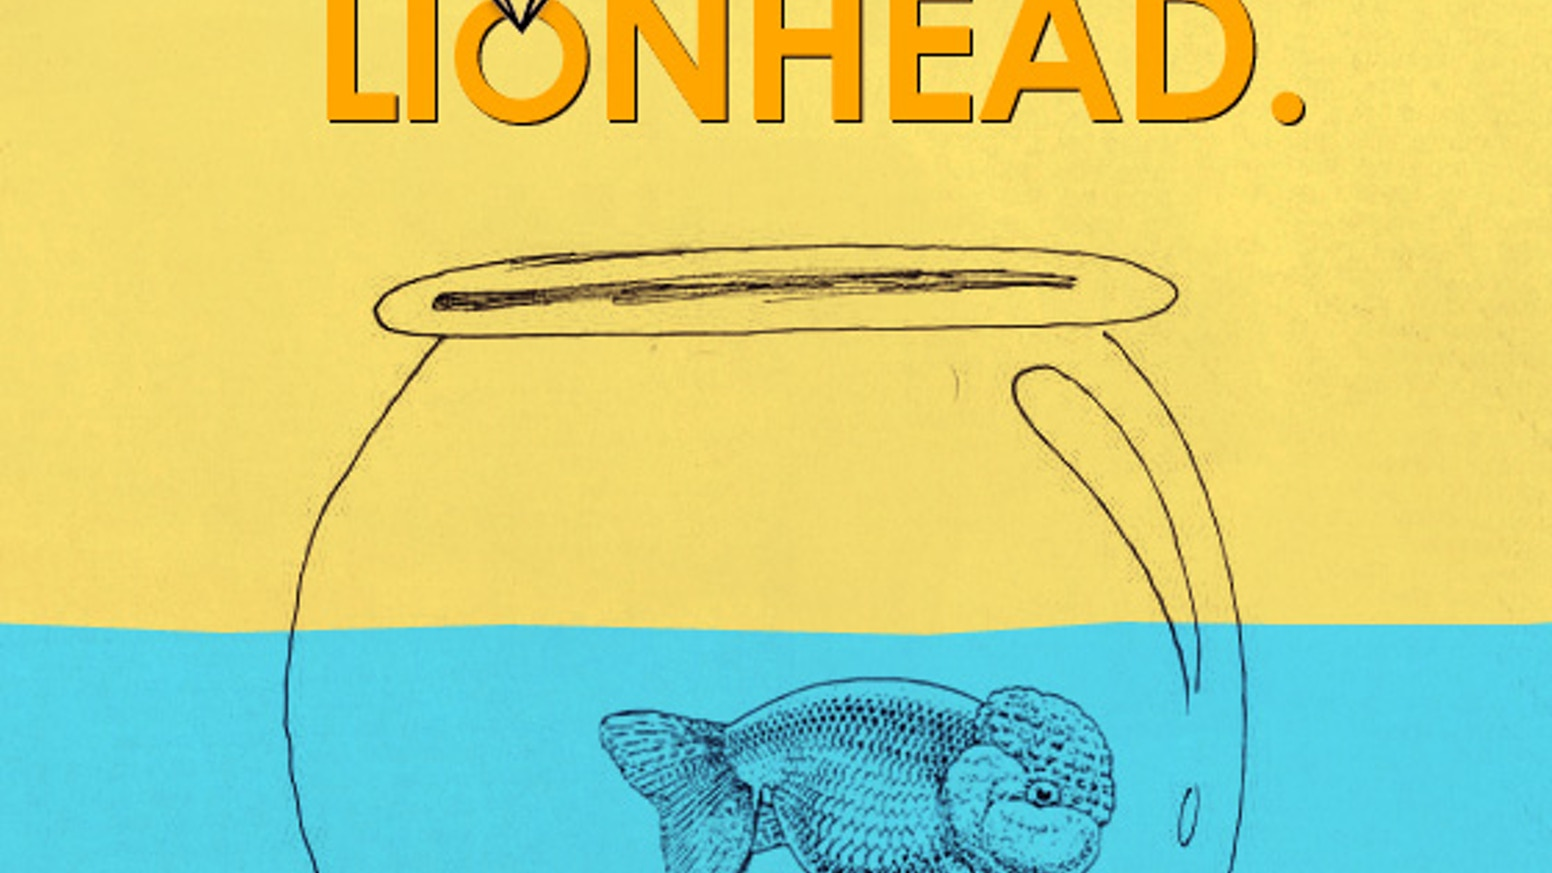 LIONHEAD - Feature Film by Thomas Rennier » Lionhead land